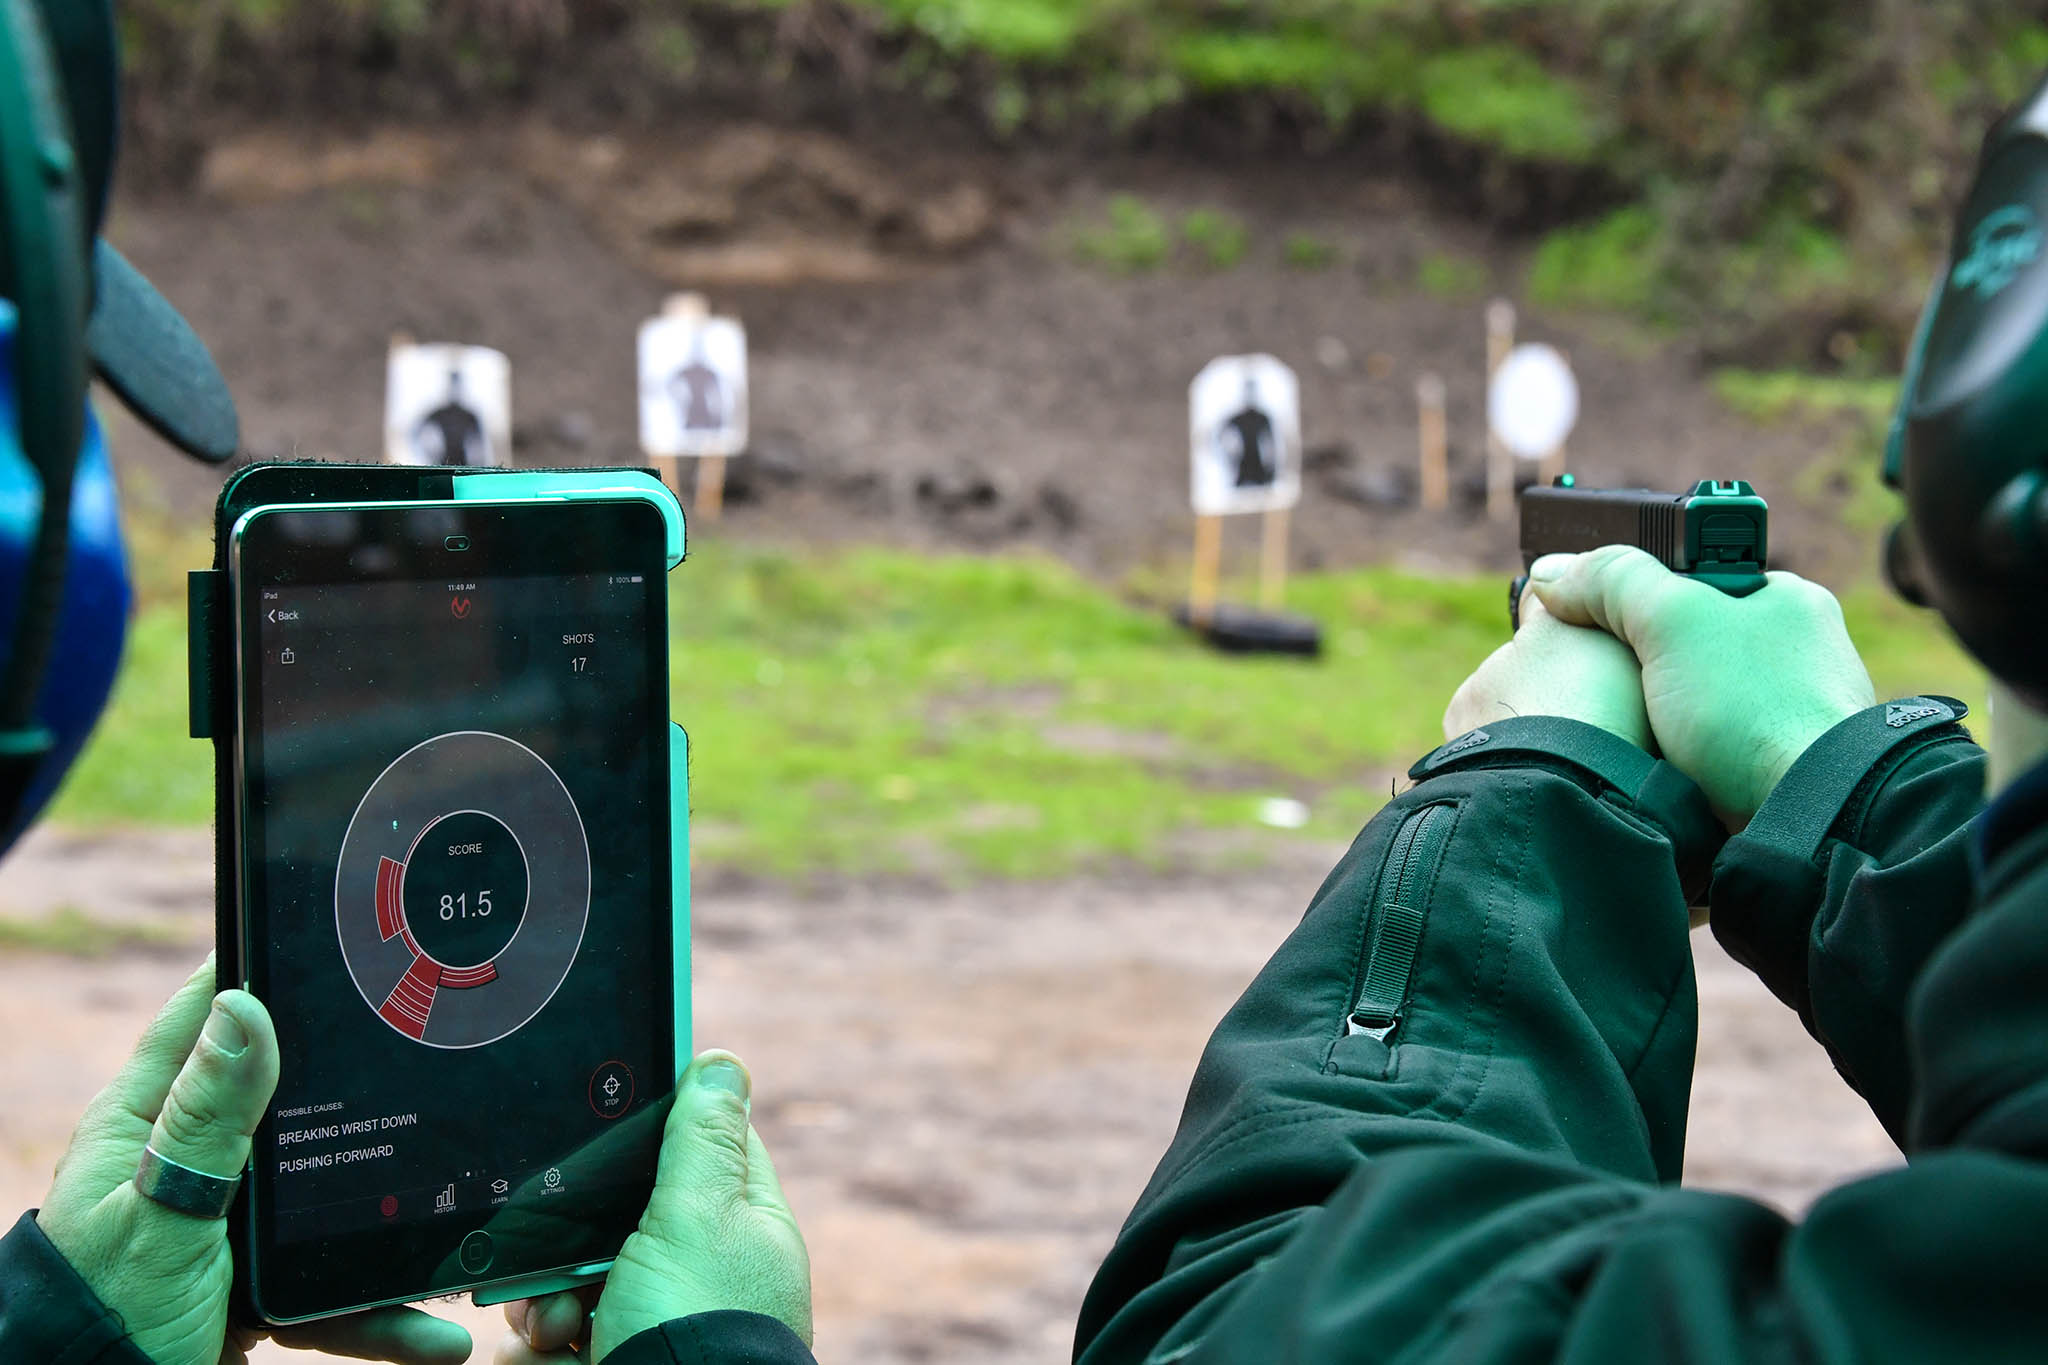 Training session with service handguns and the MantisX firearms training system